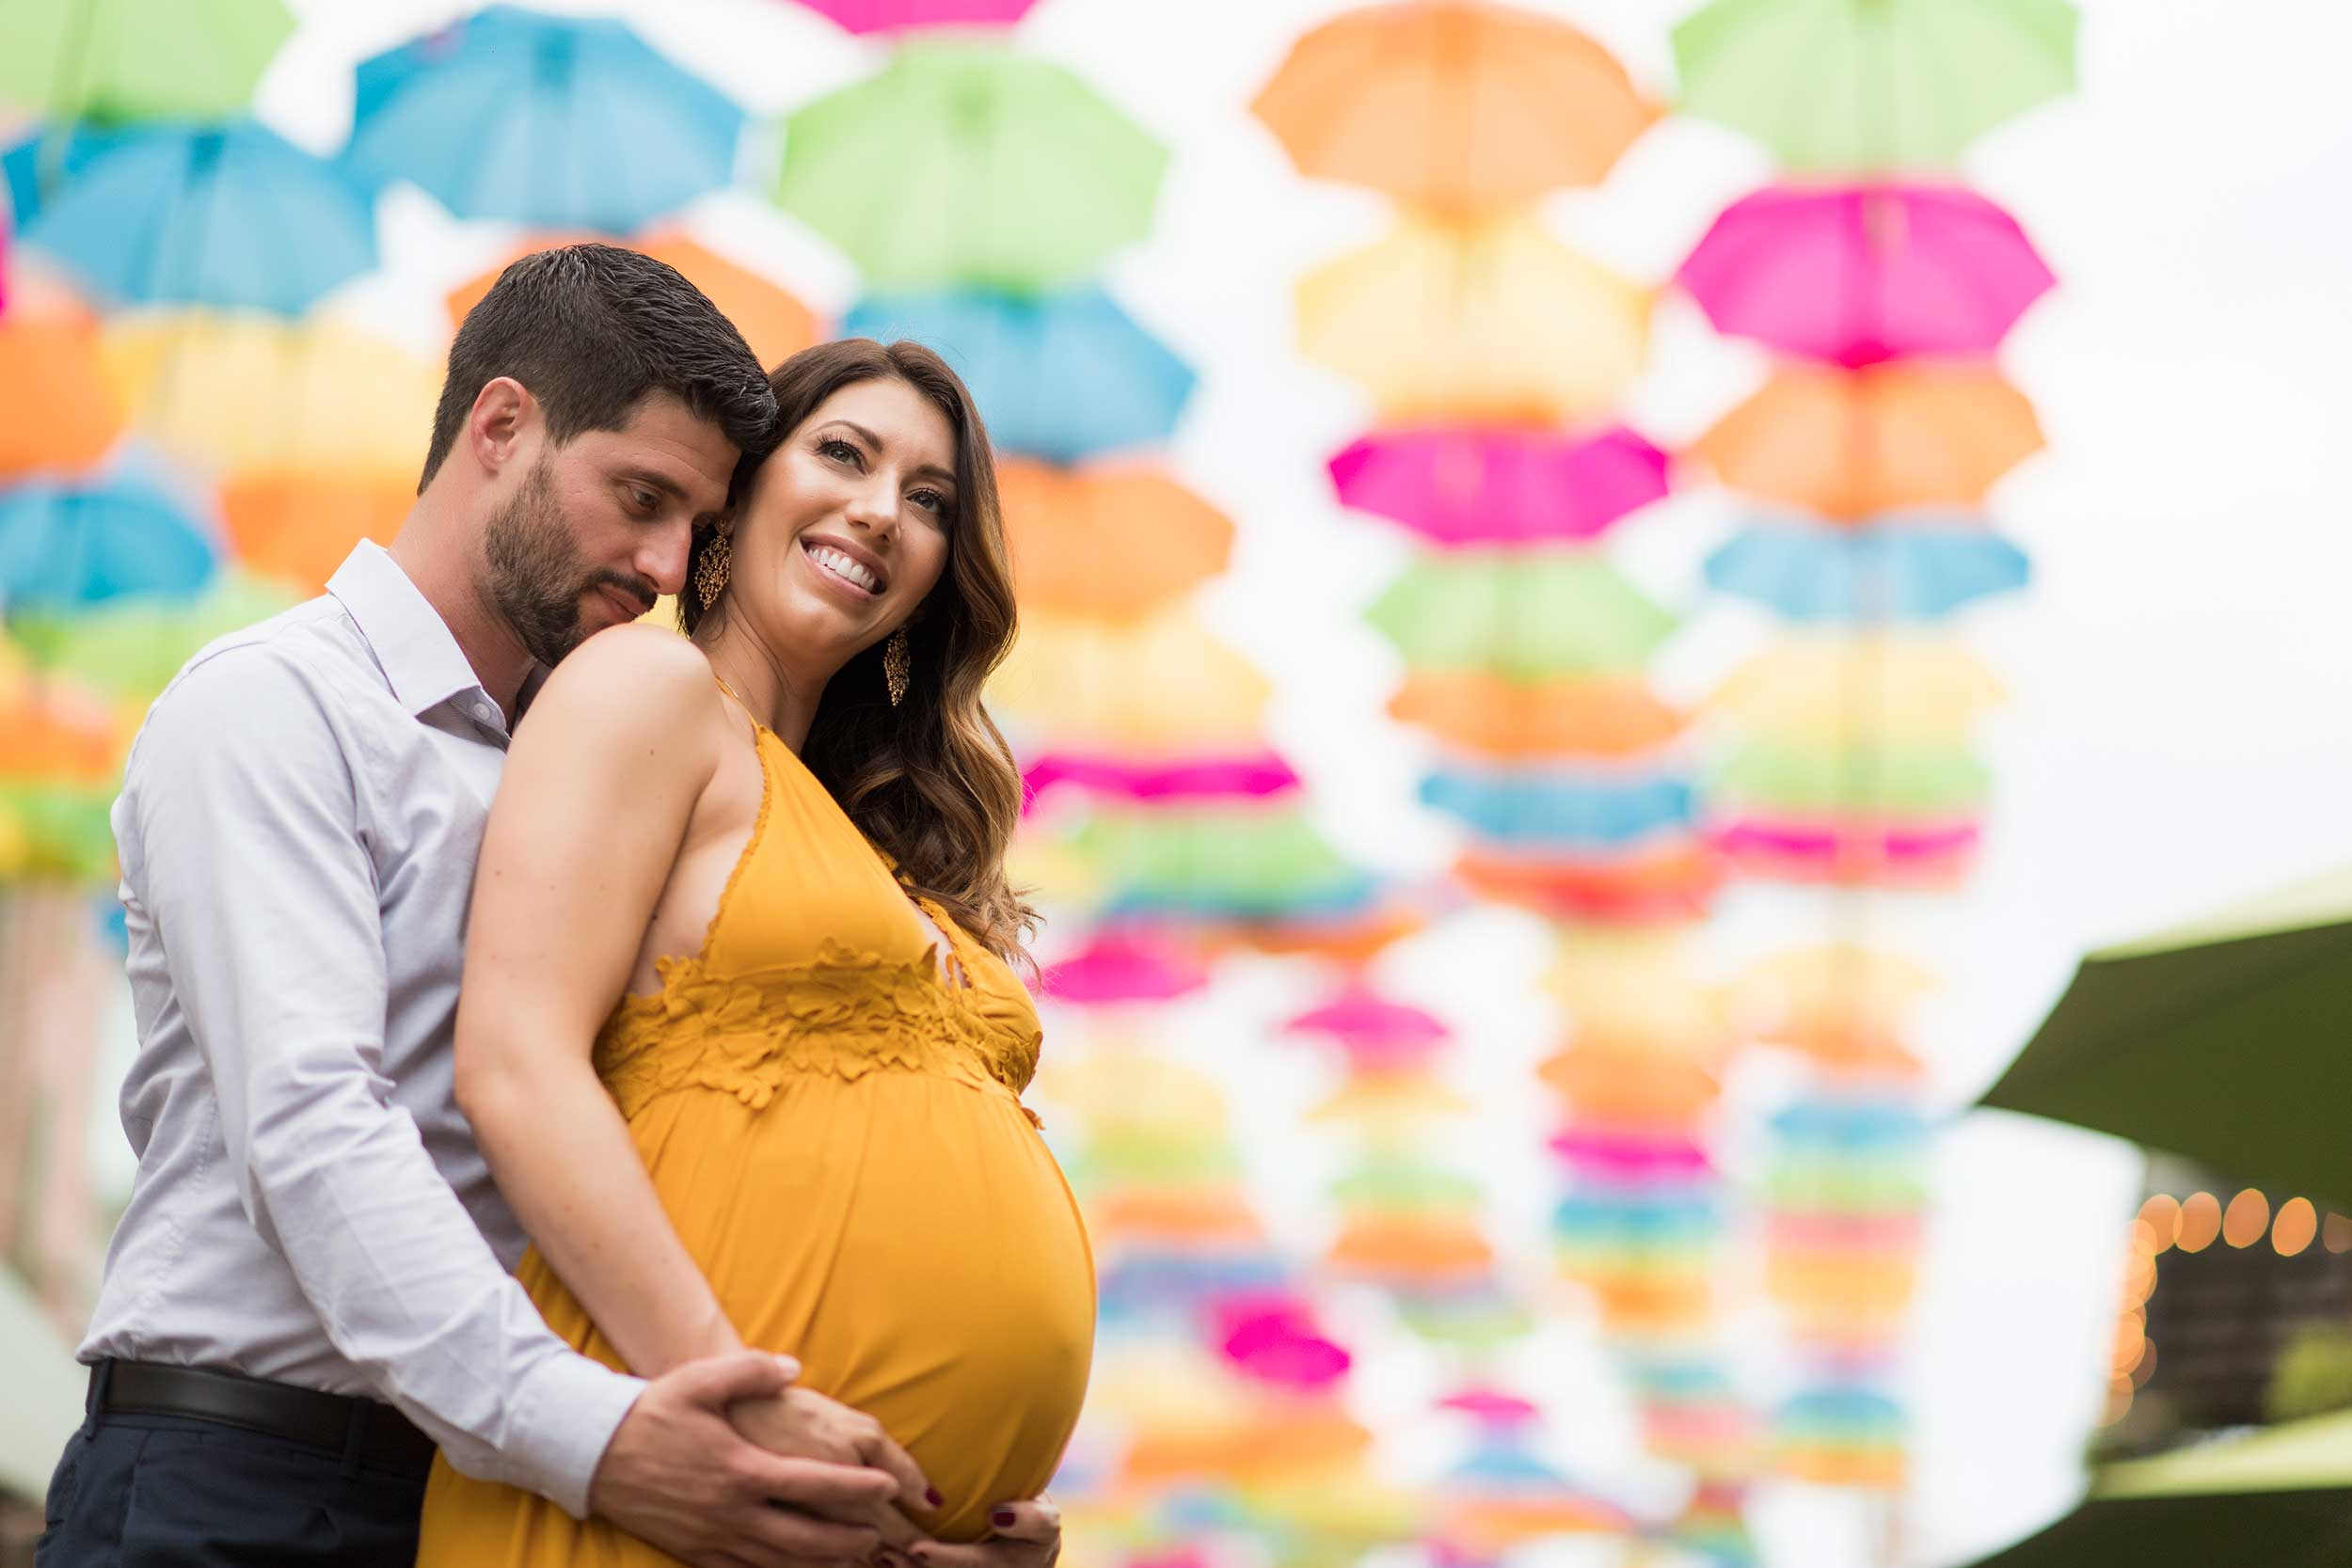 downtown pensacola palafox maternity mini session